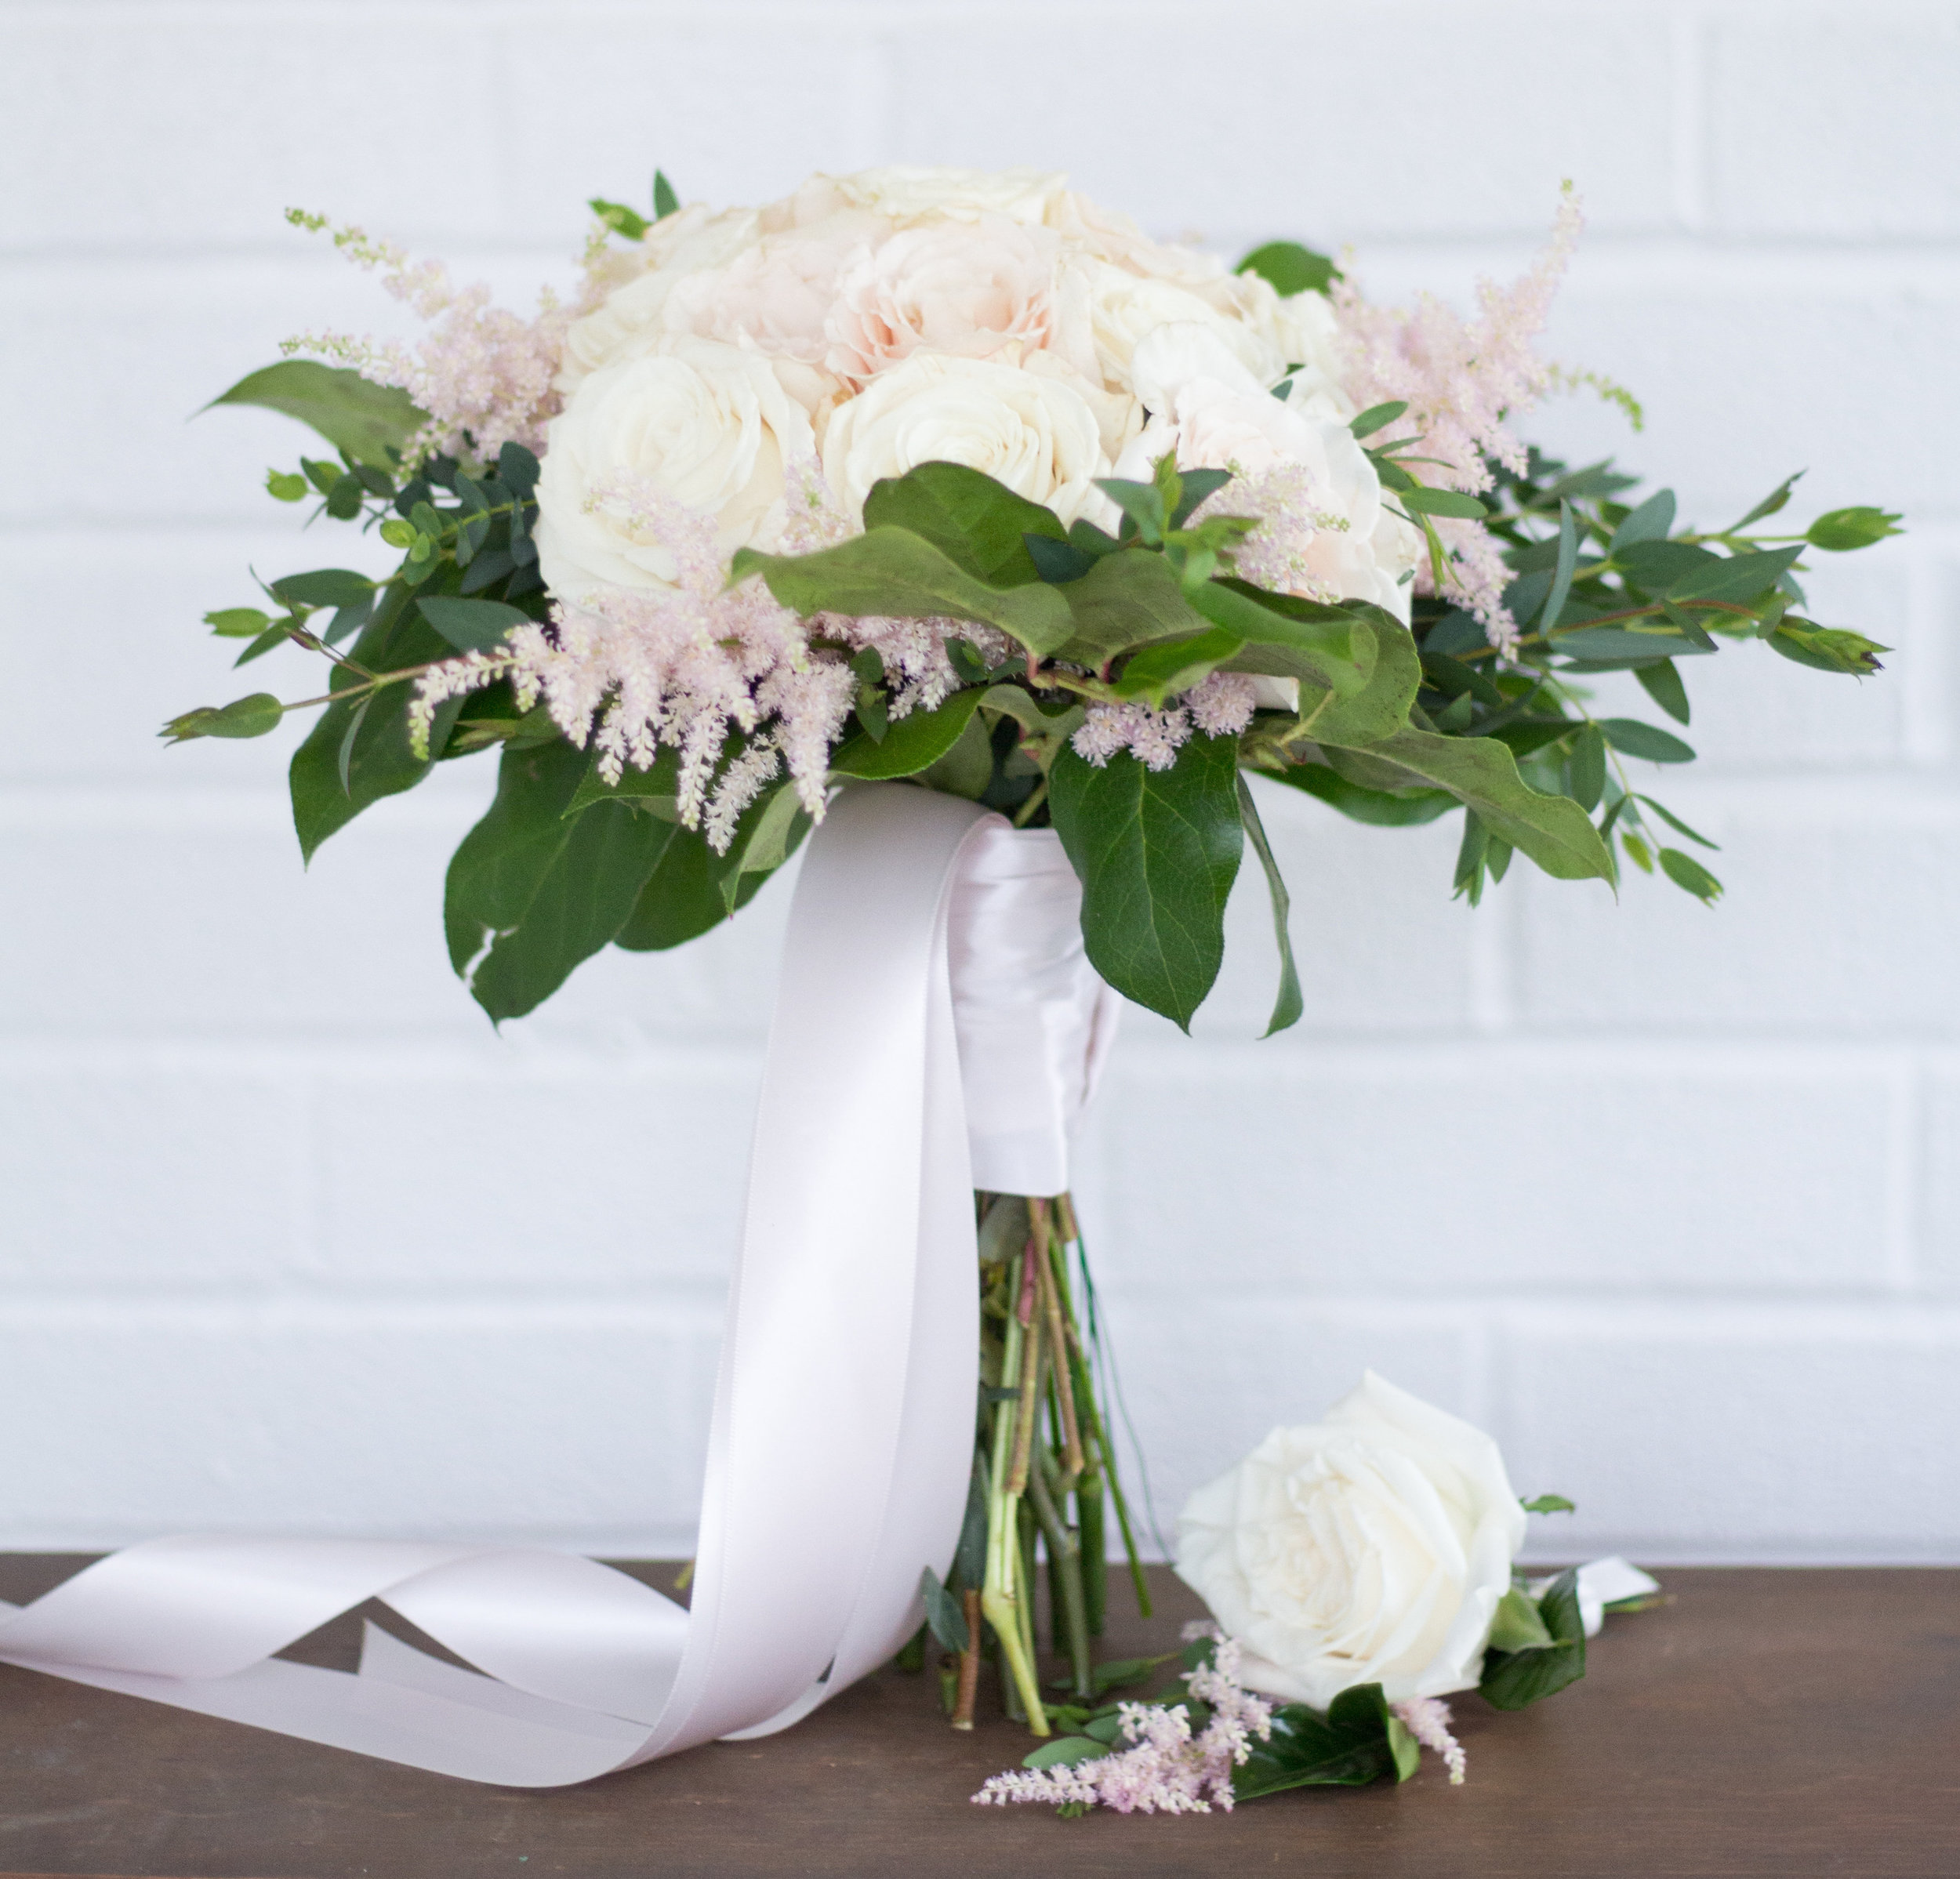 Love & Luster Floral Design Blush Rose Bouquet with Pink Astilbe